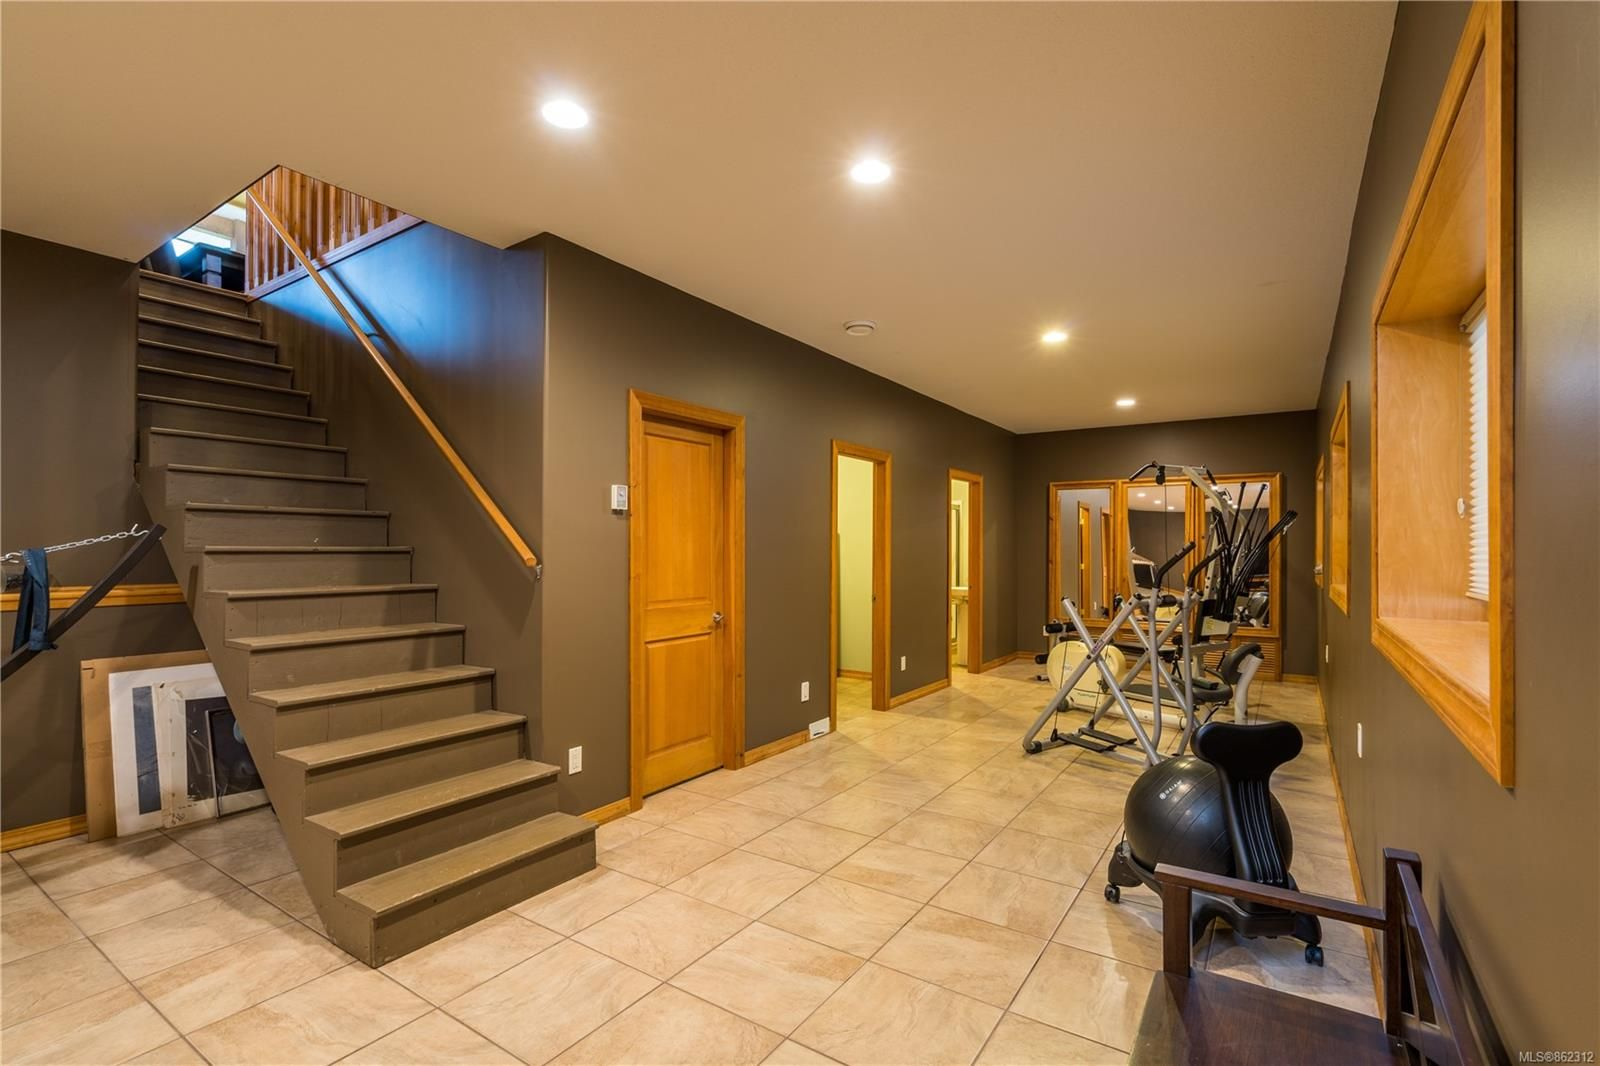 Photo 9: Photos: 7380 Plymouth Rd in : PA Alberni Valley House for sale (Port Alberni)  : MLS®# 862312